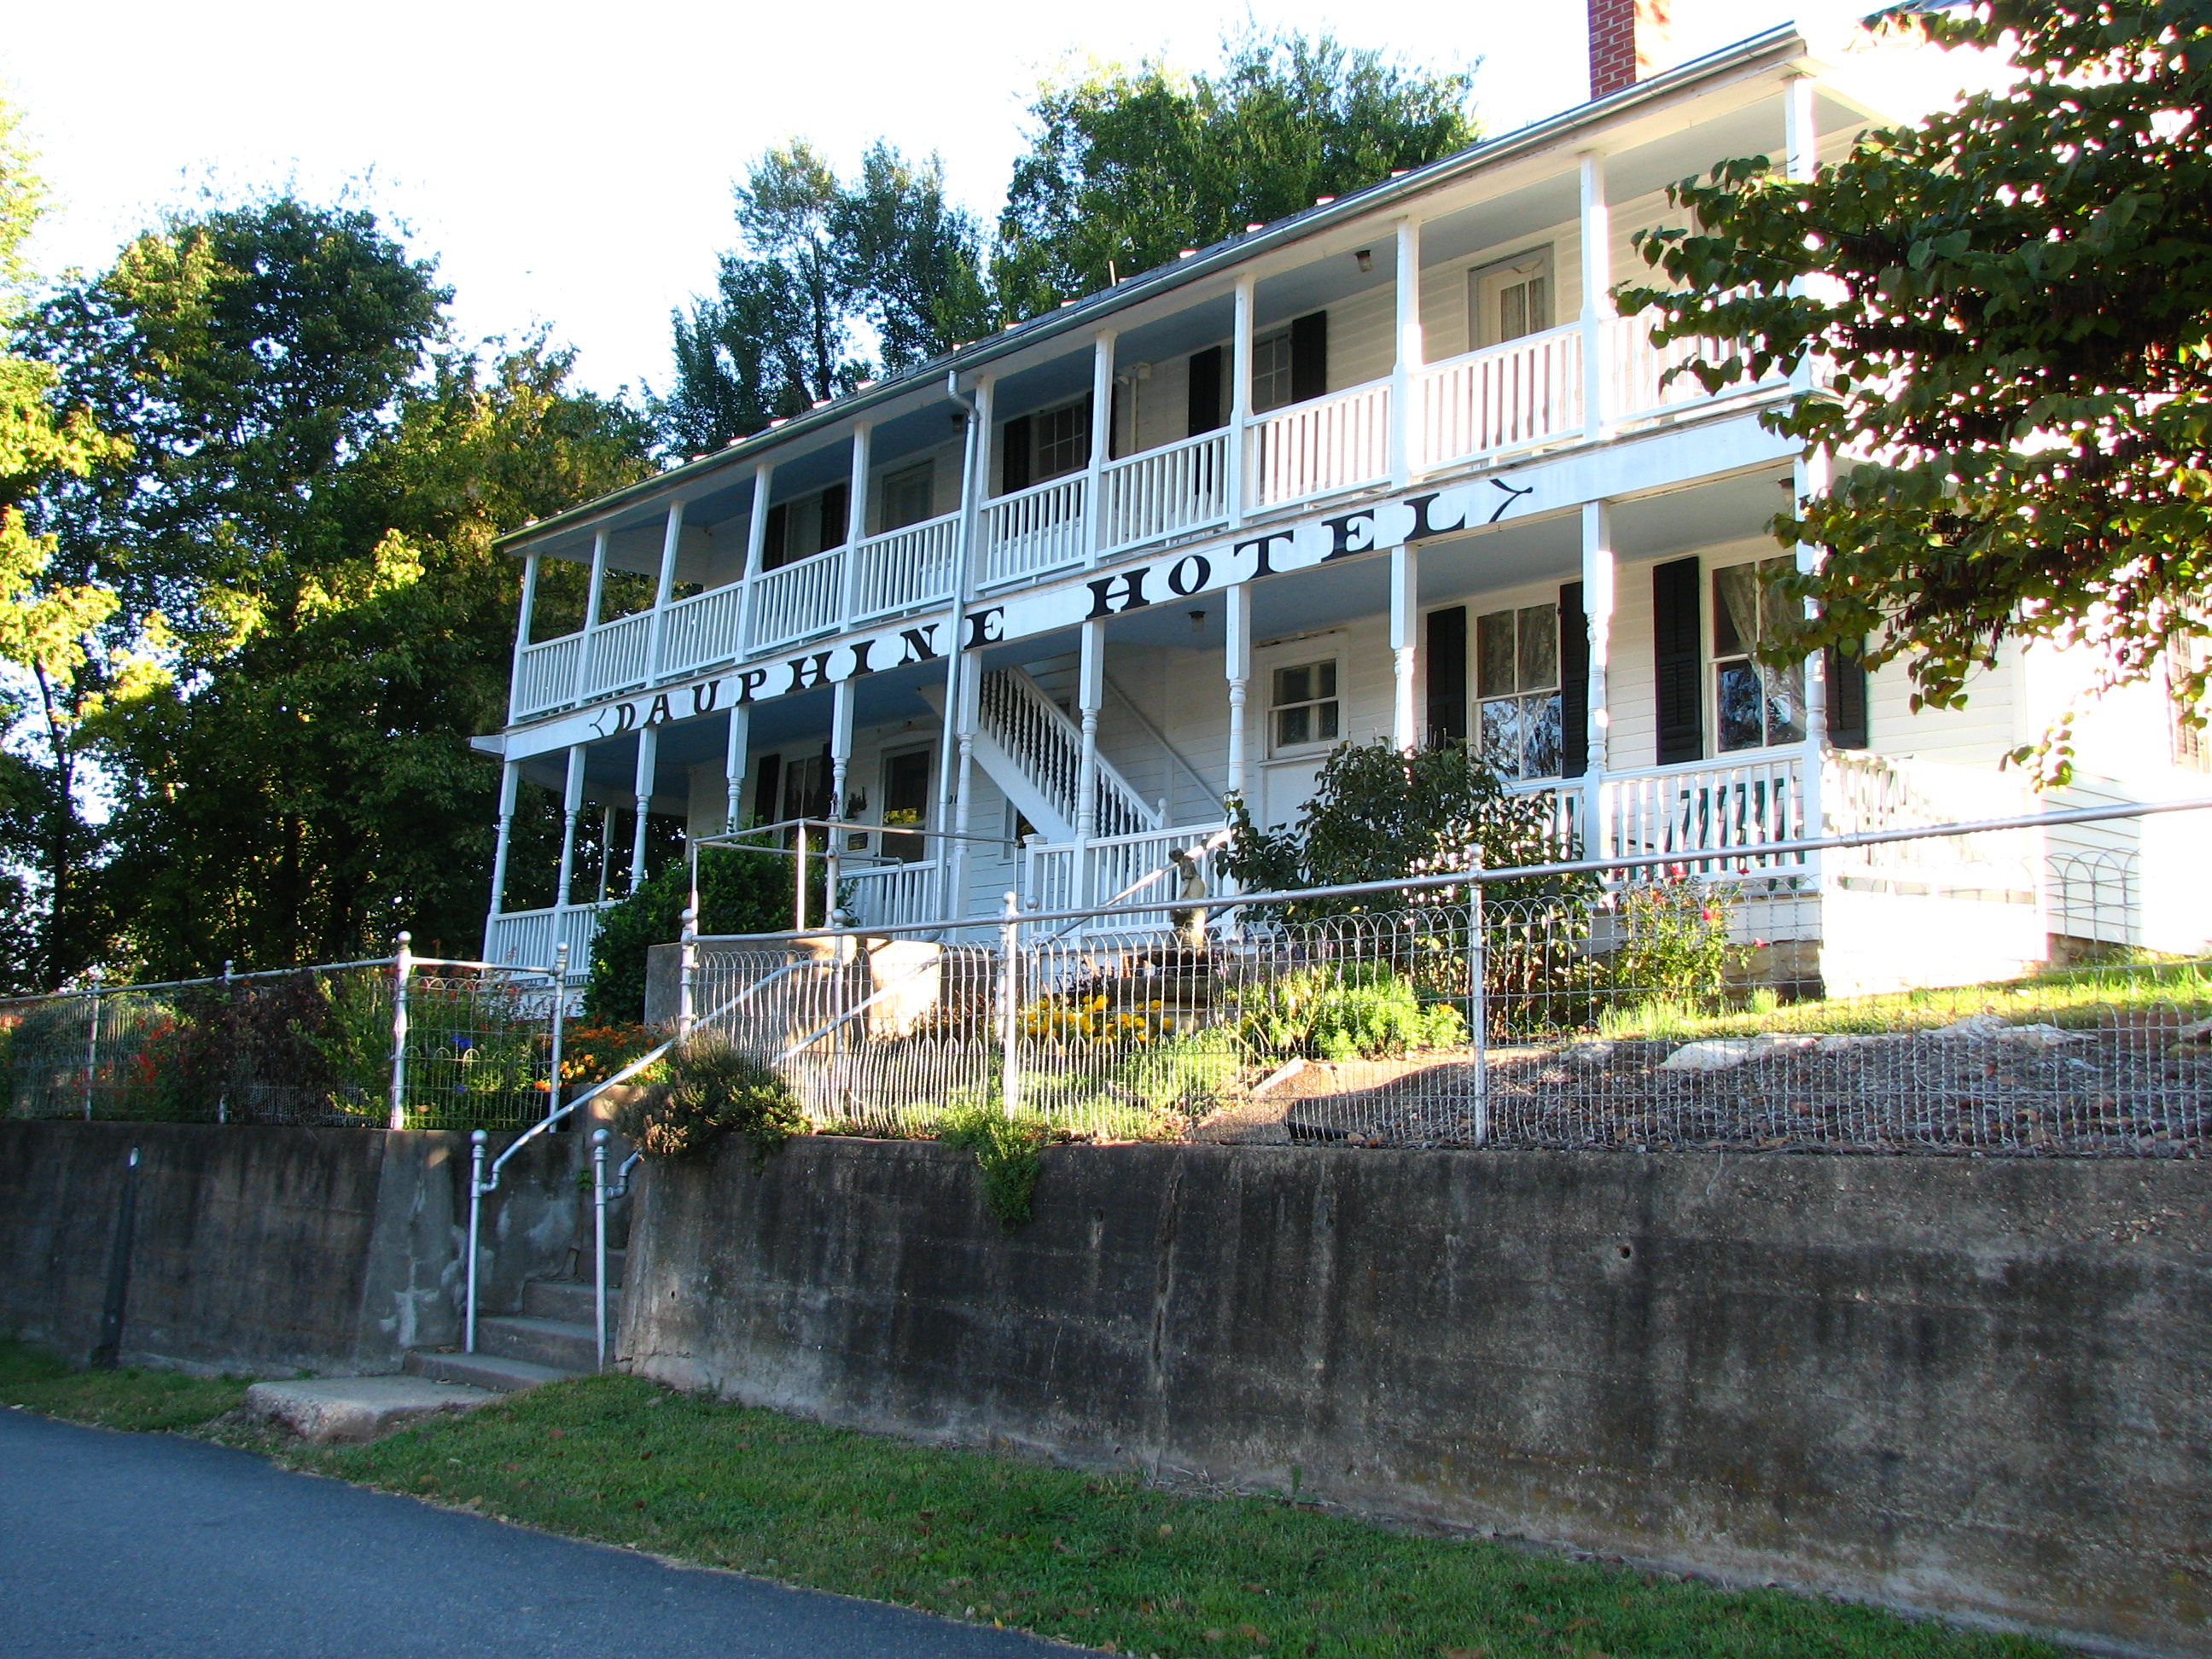 Dauphine Hotel Bed and Breakfast